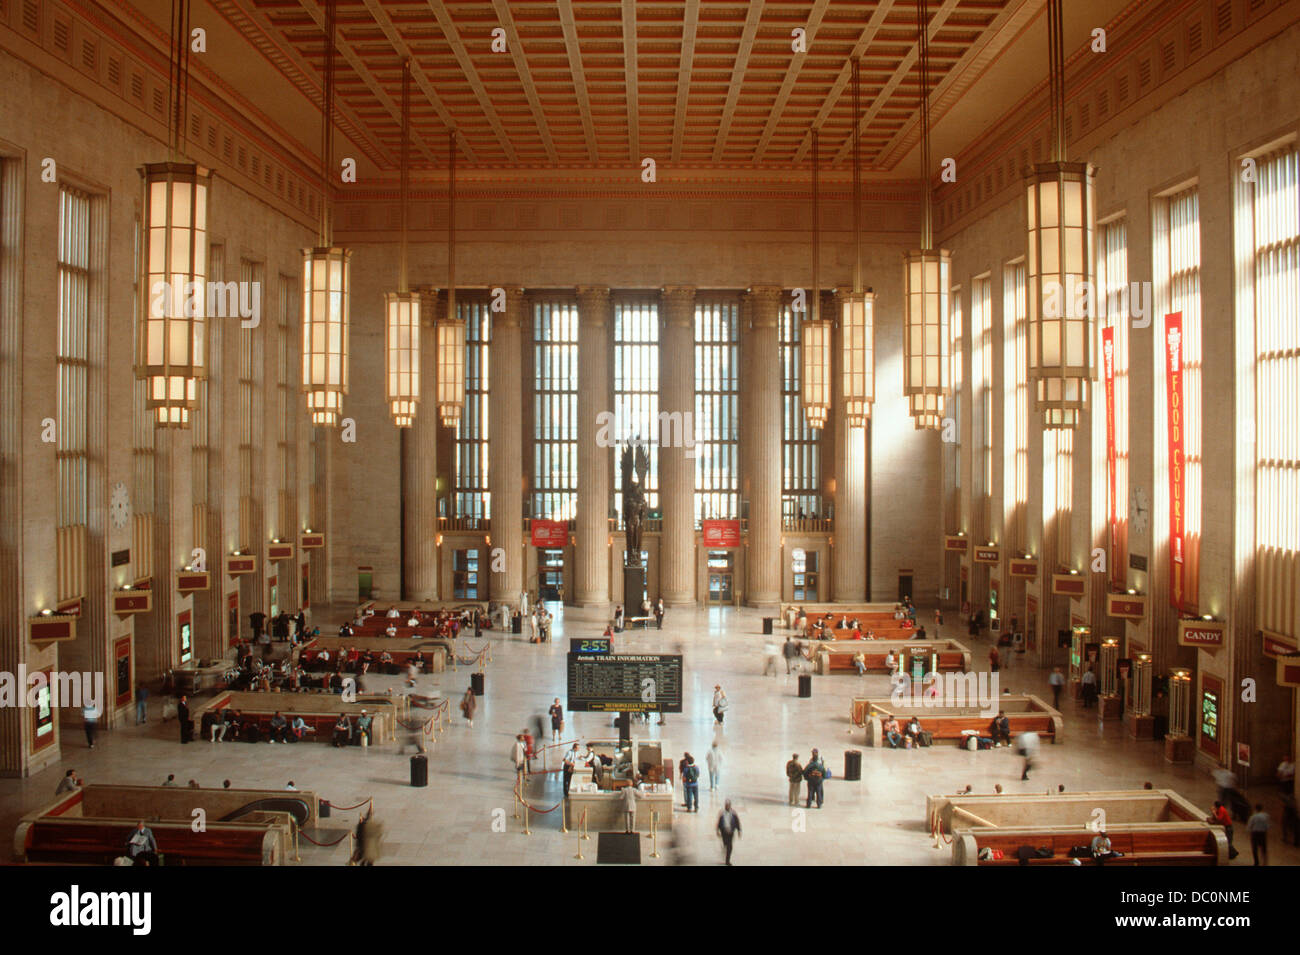 Art Deco Interior.Art Deco Interior Of 30th Street Train Station Philadelphia Stock